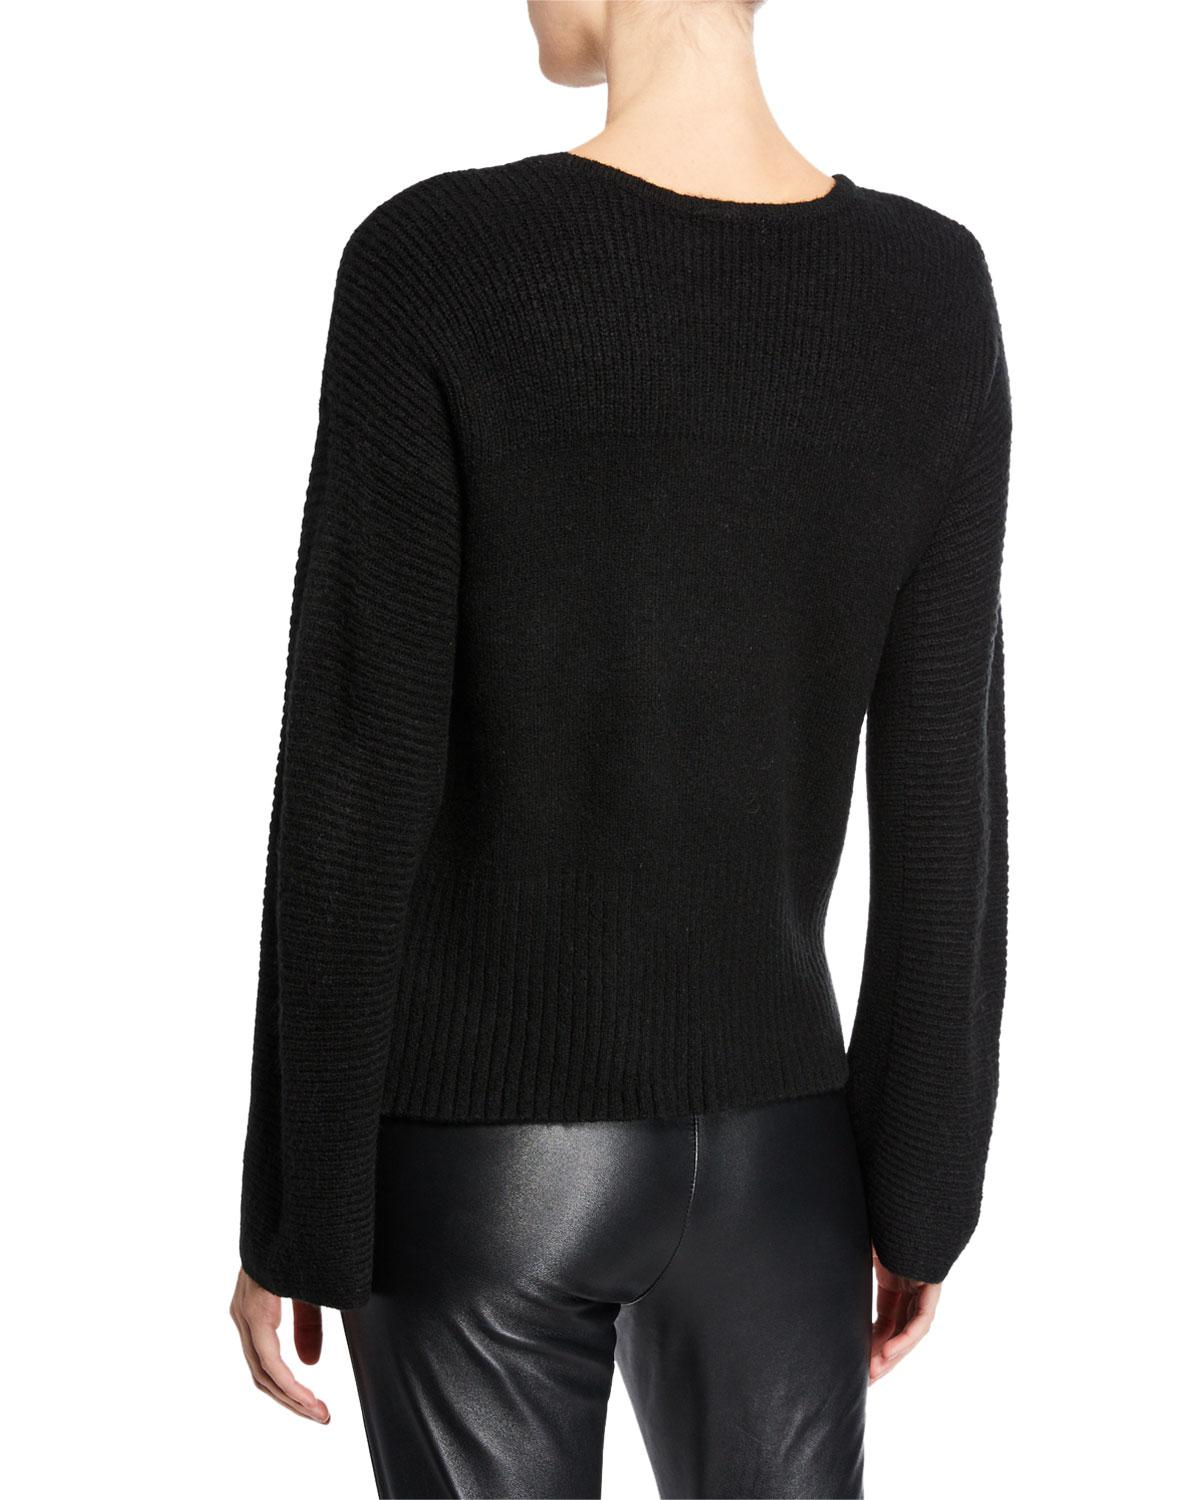 0aaf4d7a7bda Lyst - Neiman Marcus Boat-neck Long-sleeve Sweater W  Pearly Trim in Black